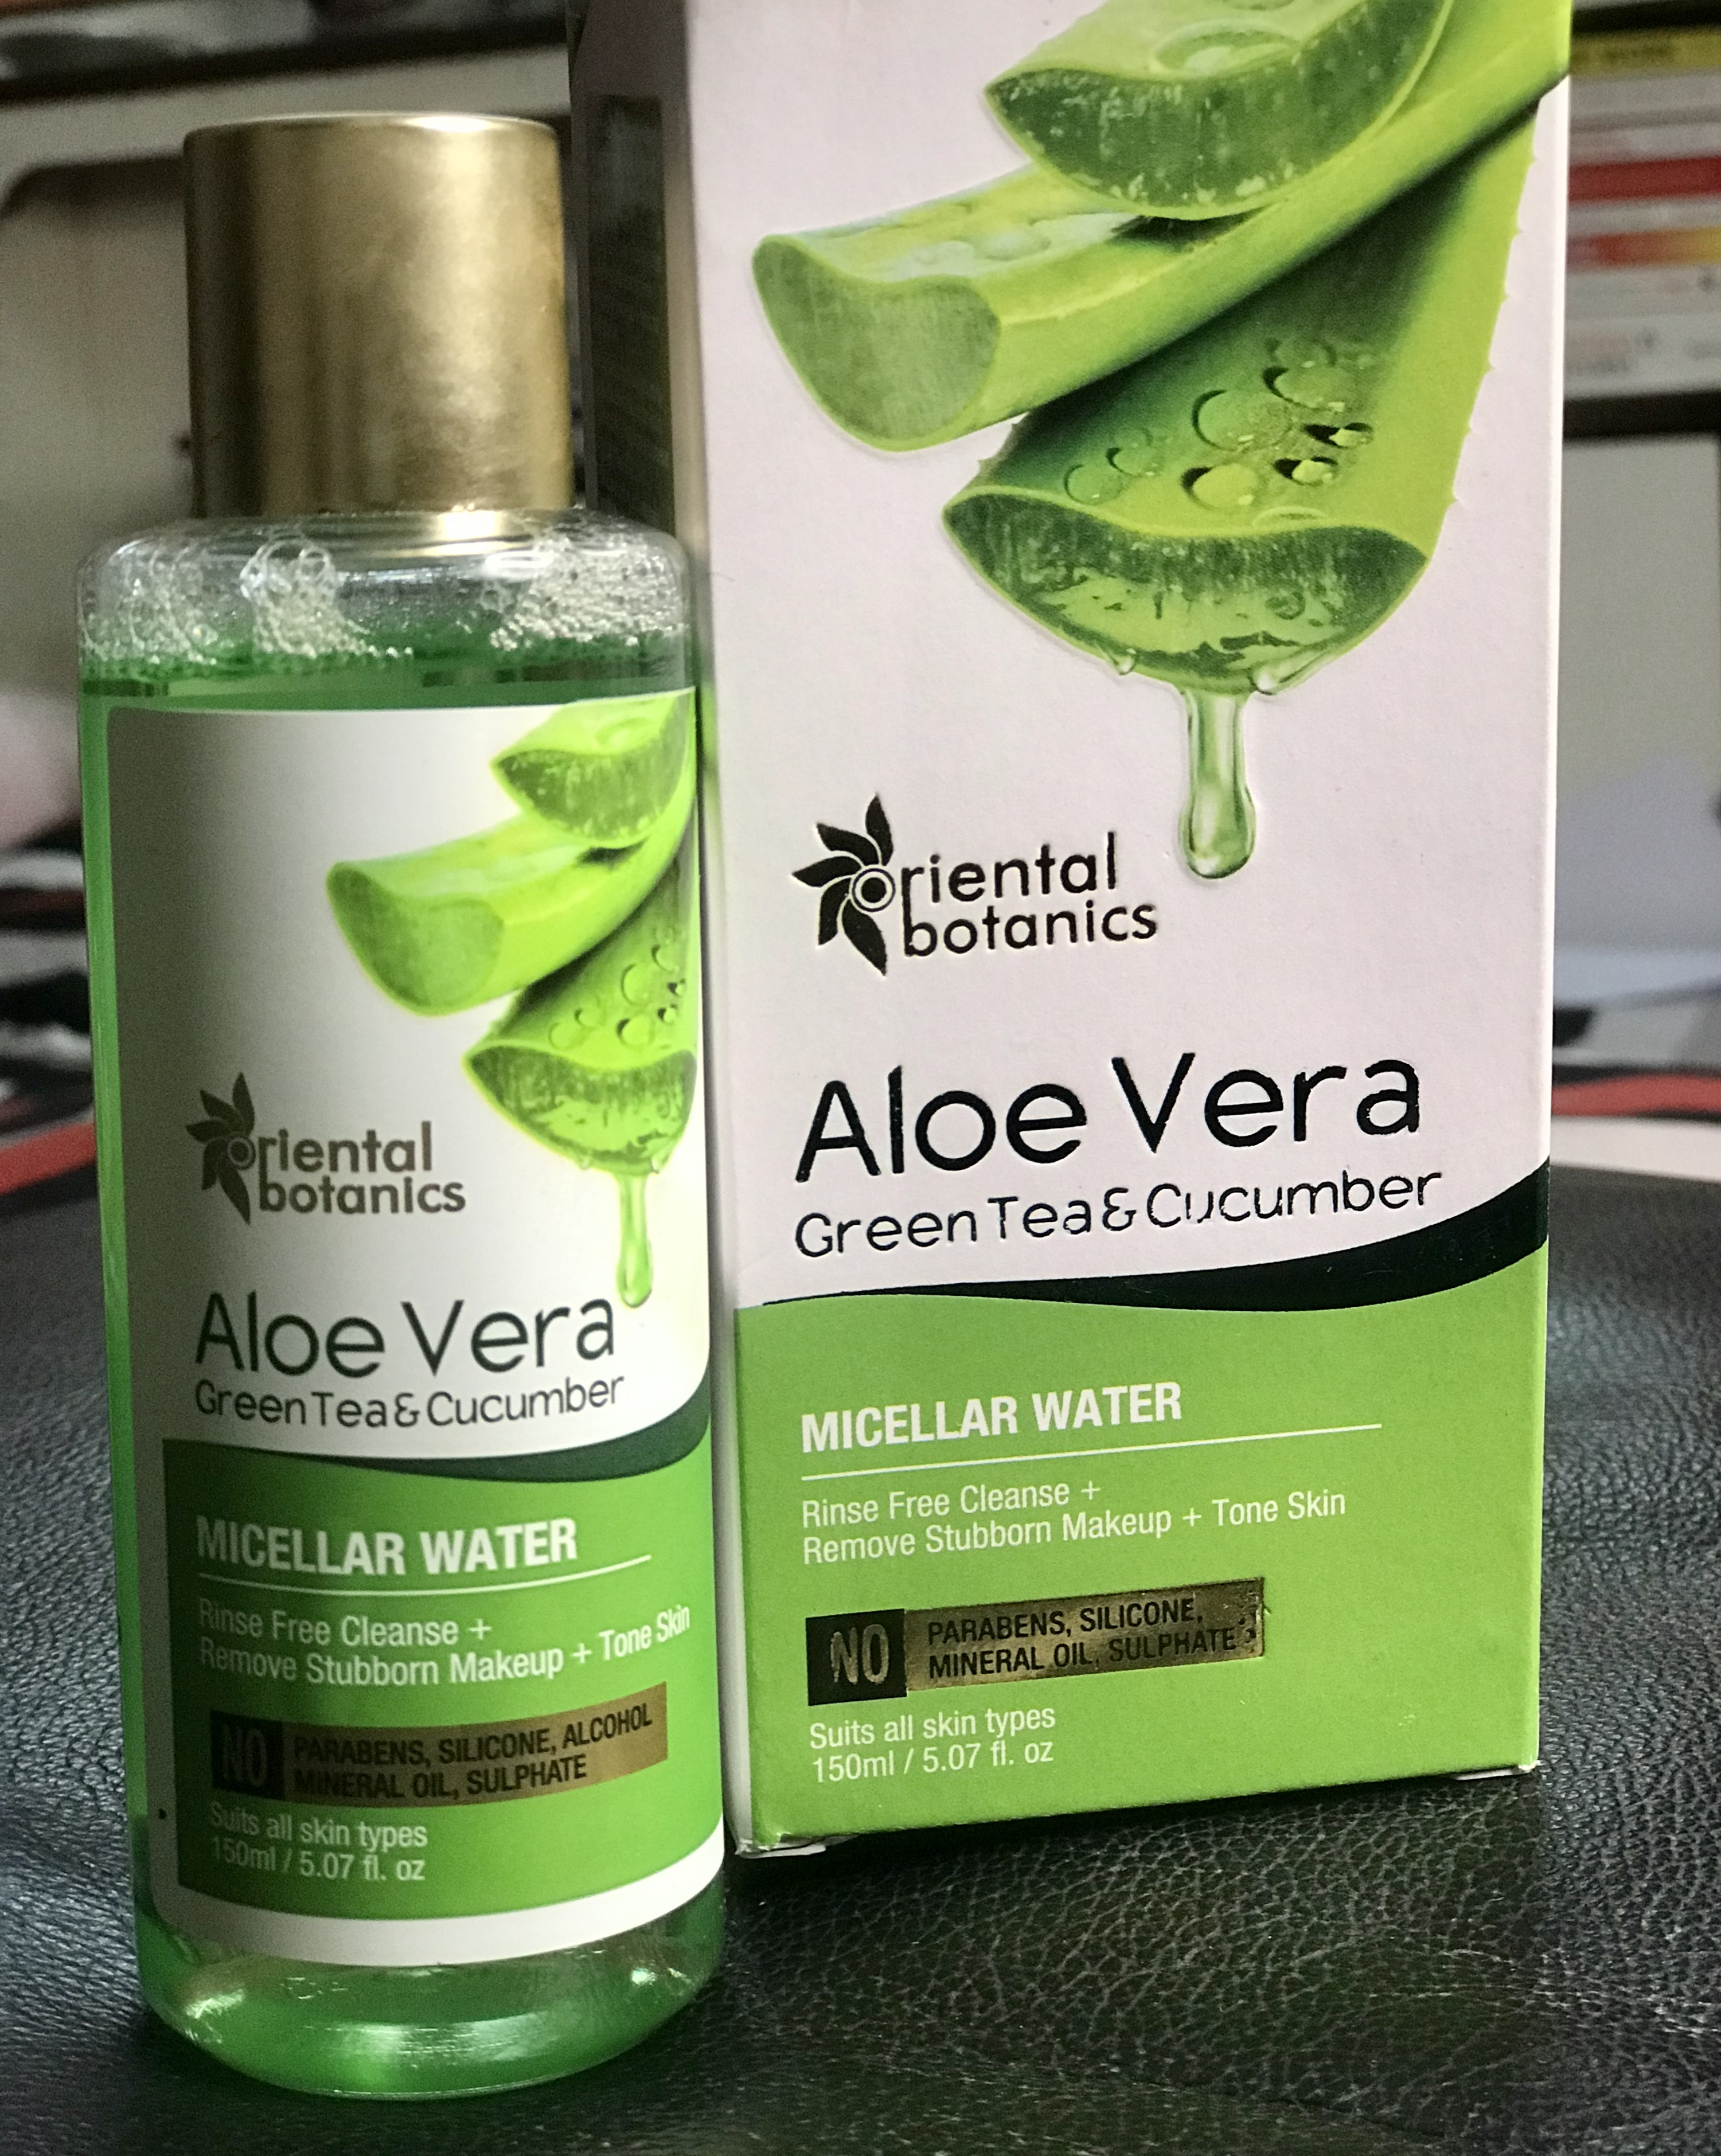 Oriental Botanics Aloe Vera, Green Tea & Cucumber Face Toner-Highly Recommended-By himanshiahuja-2